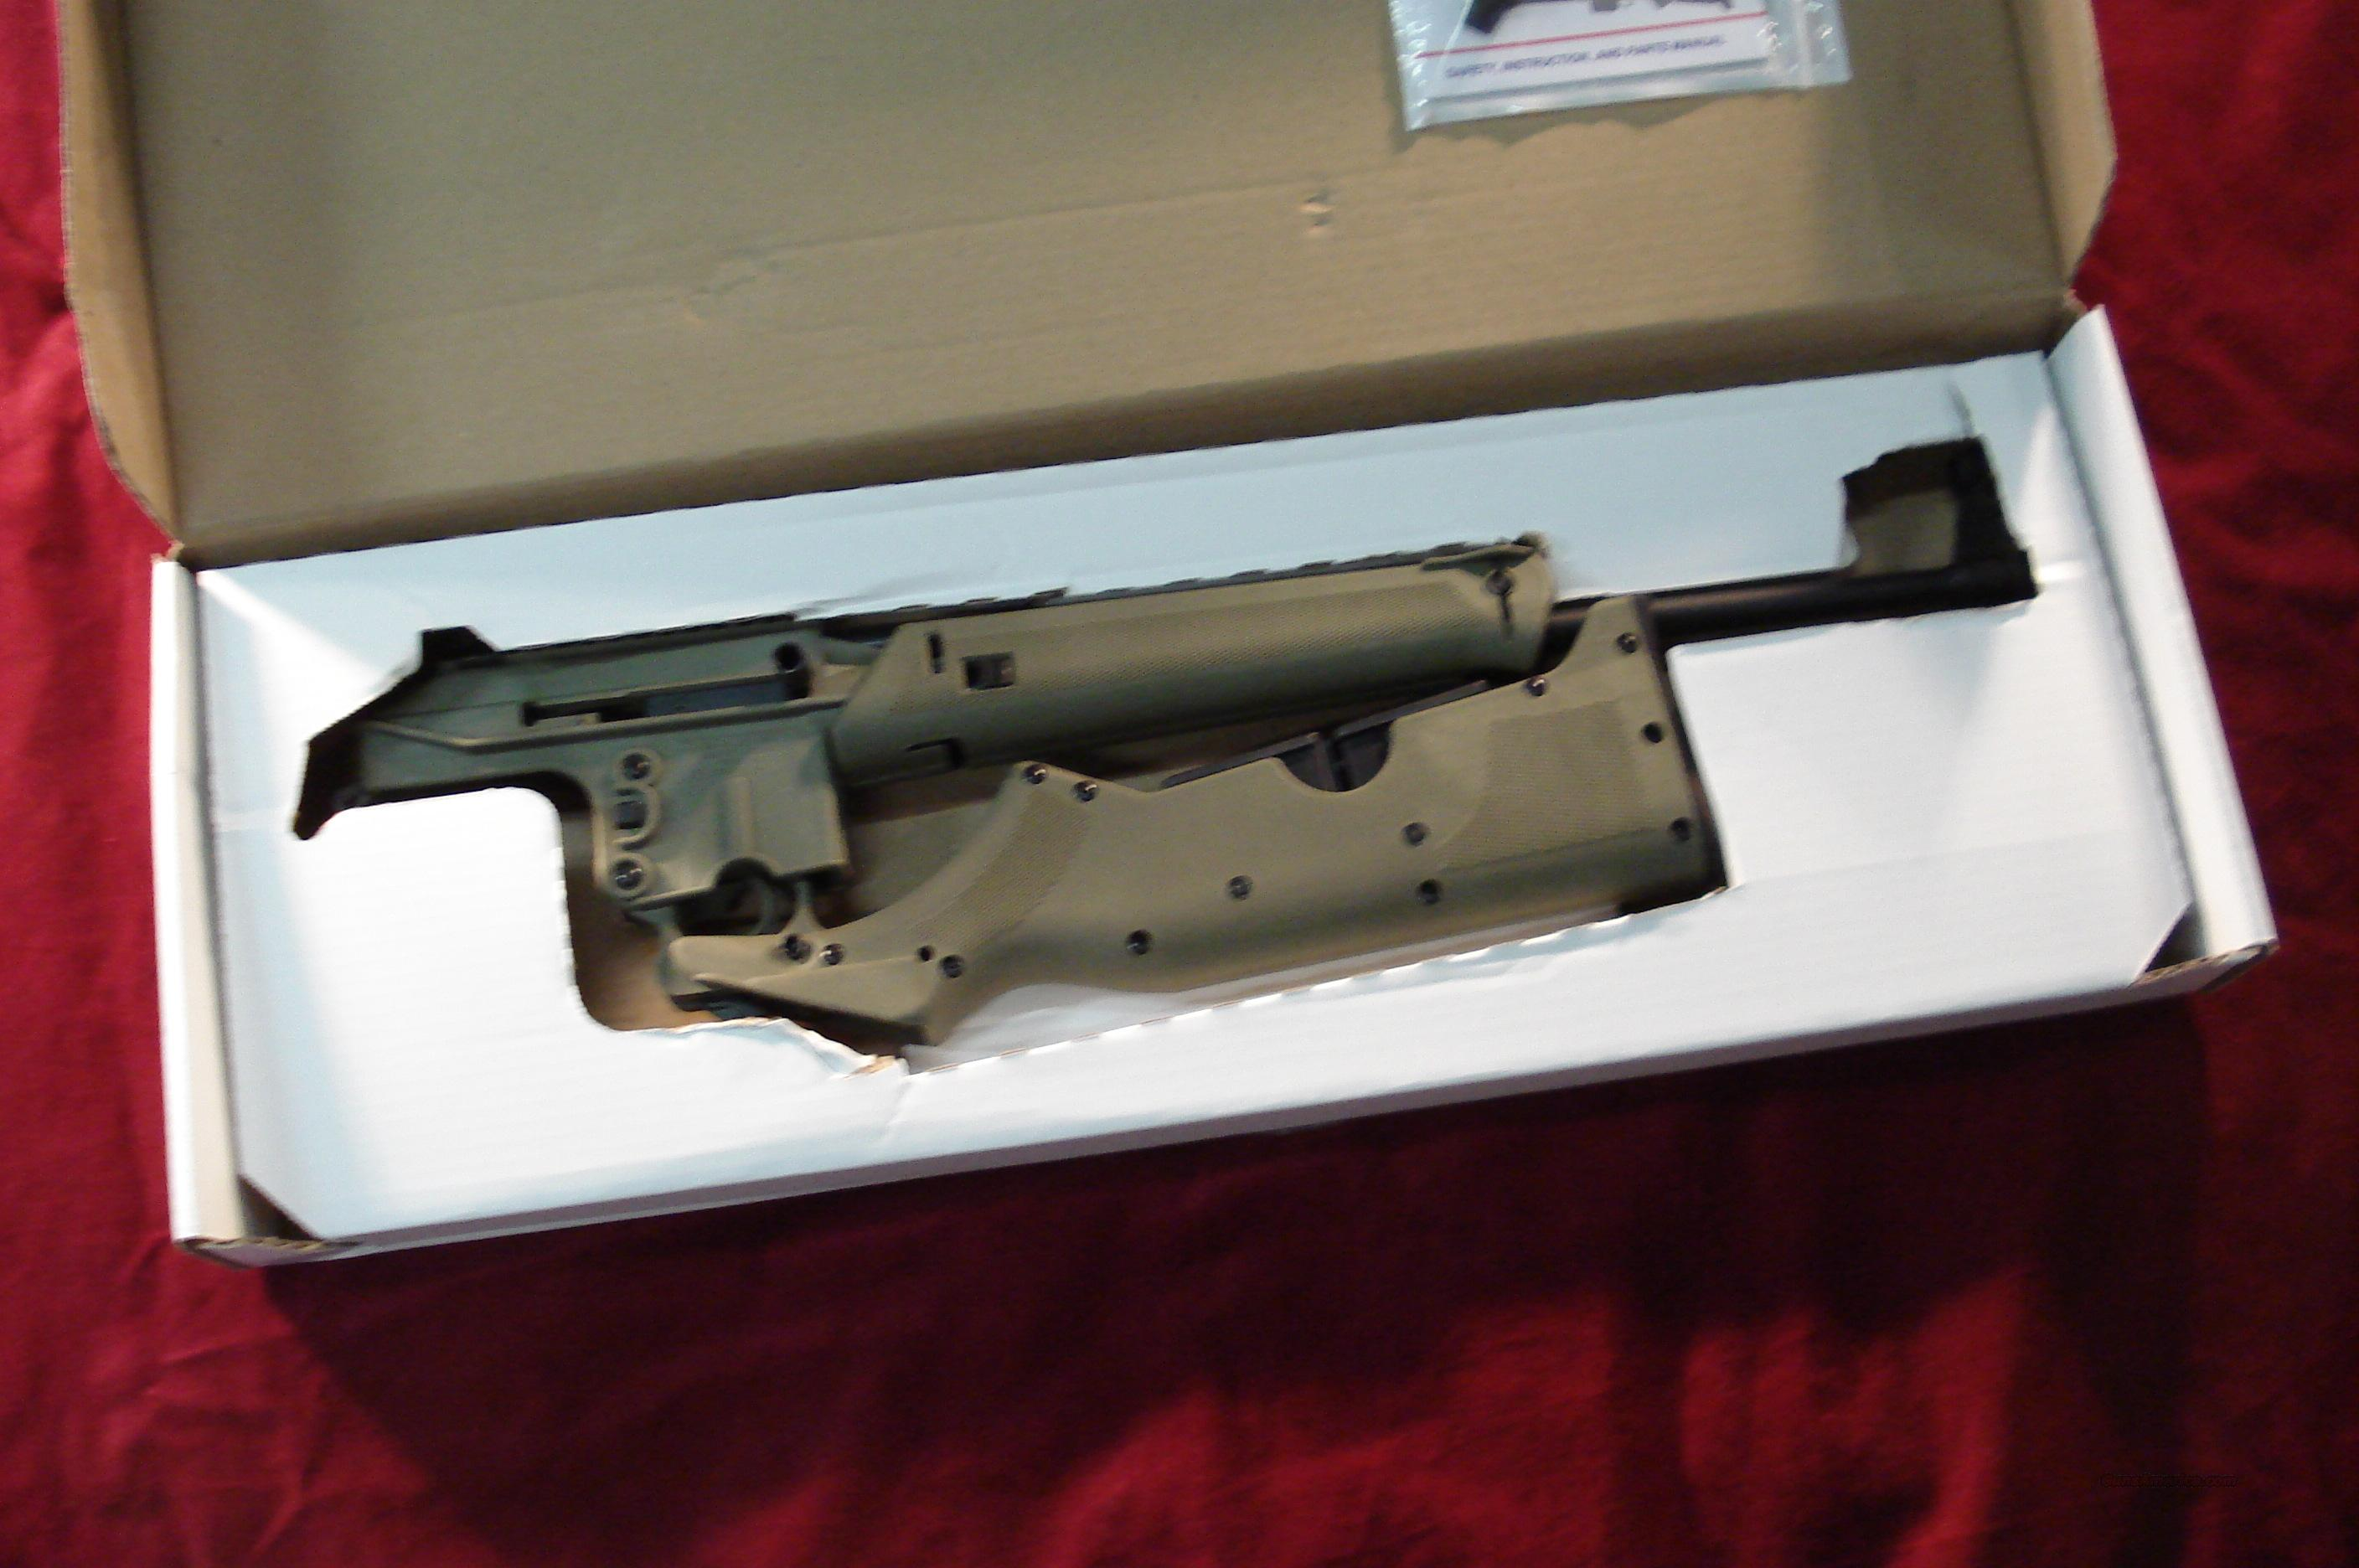 KEL-TEC SU-16 GREEN 223CAL.  NEW   Guns > Rifles > Kel-Tec Rifles